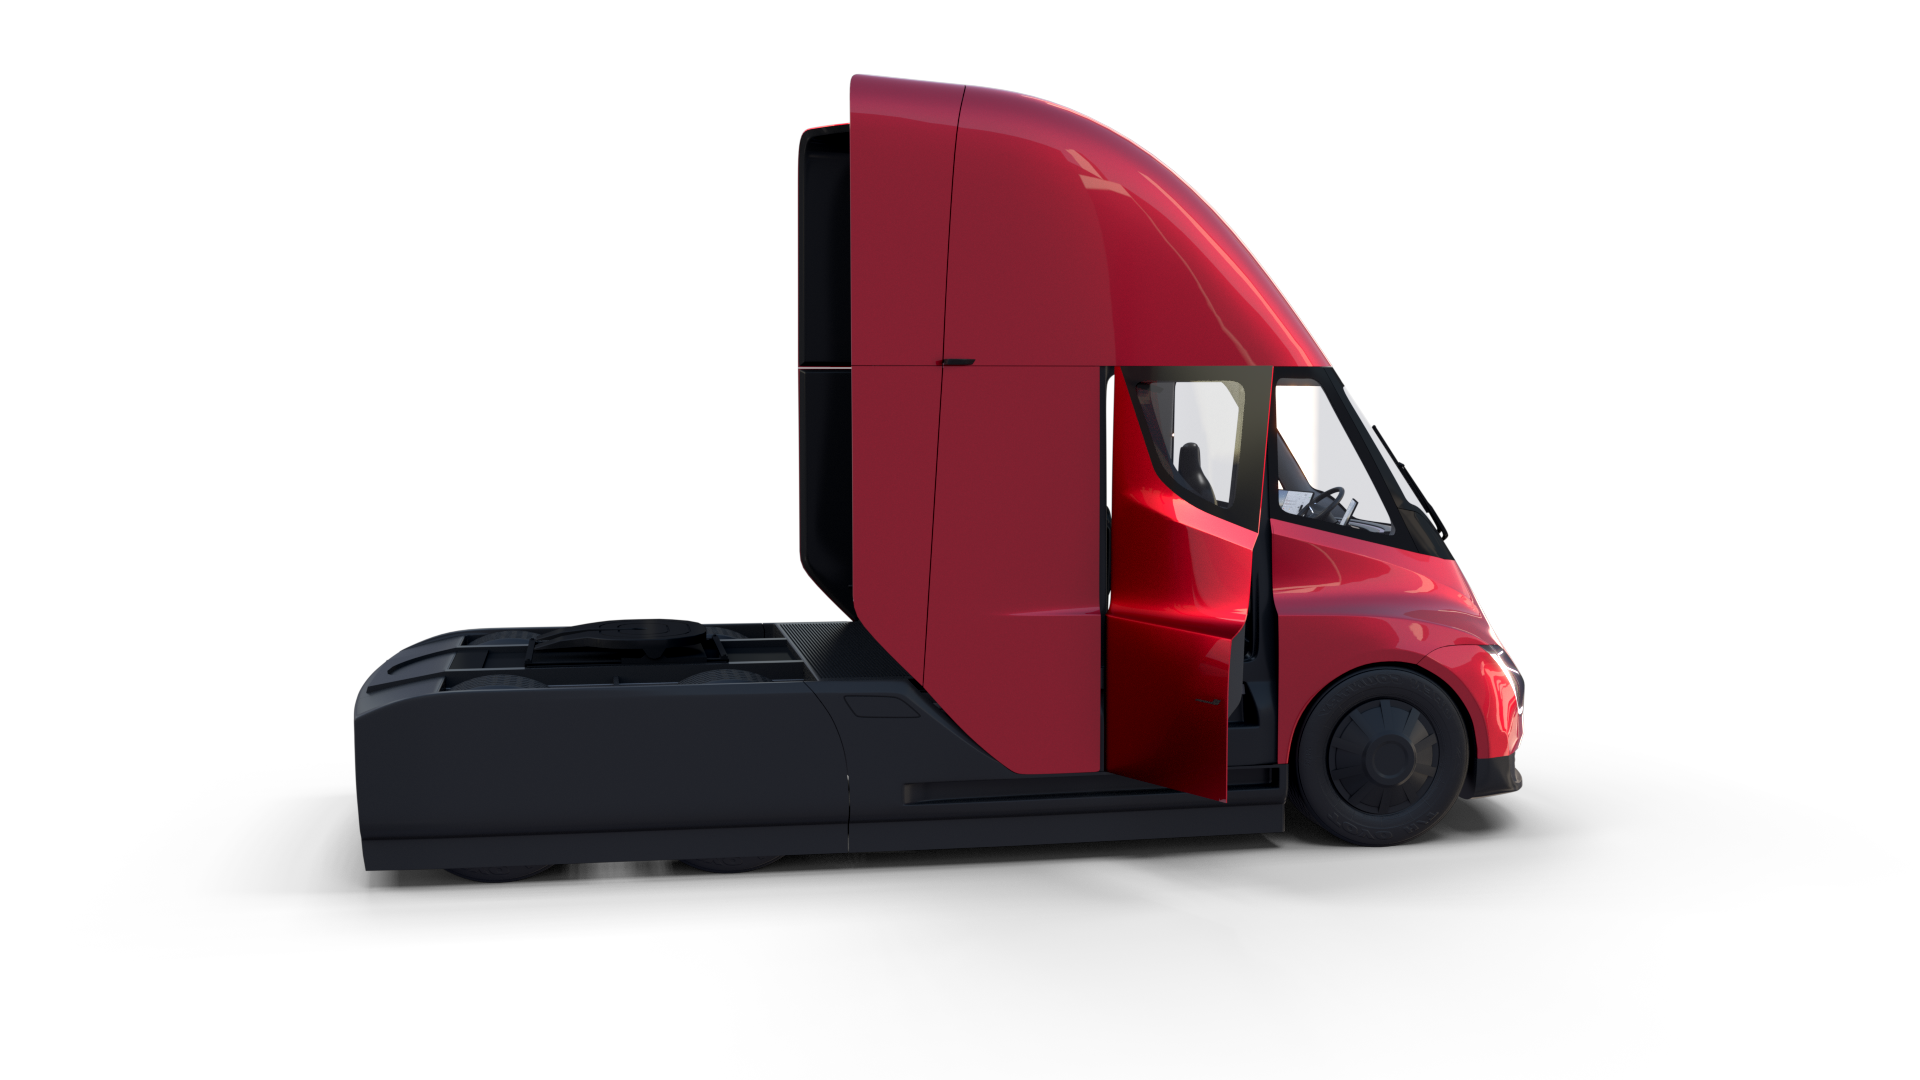 Tesla Truck With Chassis Interior And Trailer Red Tesla Trucks Semi Trailer